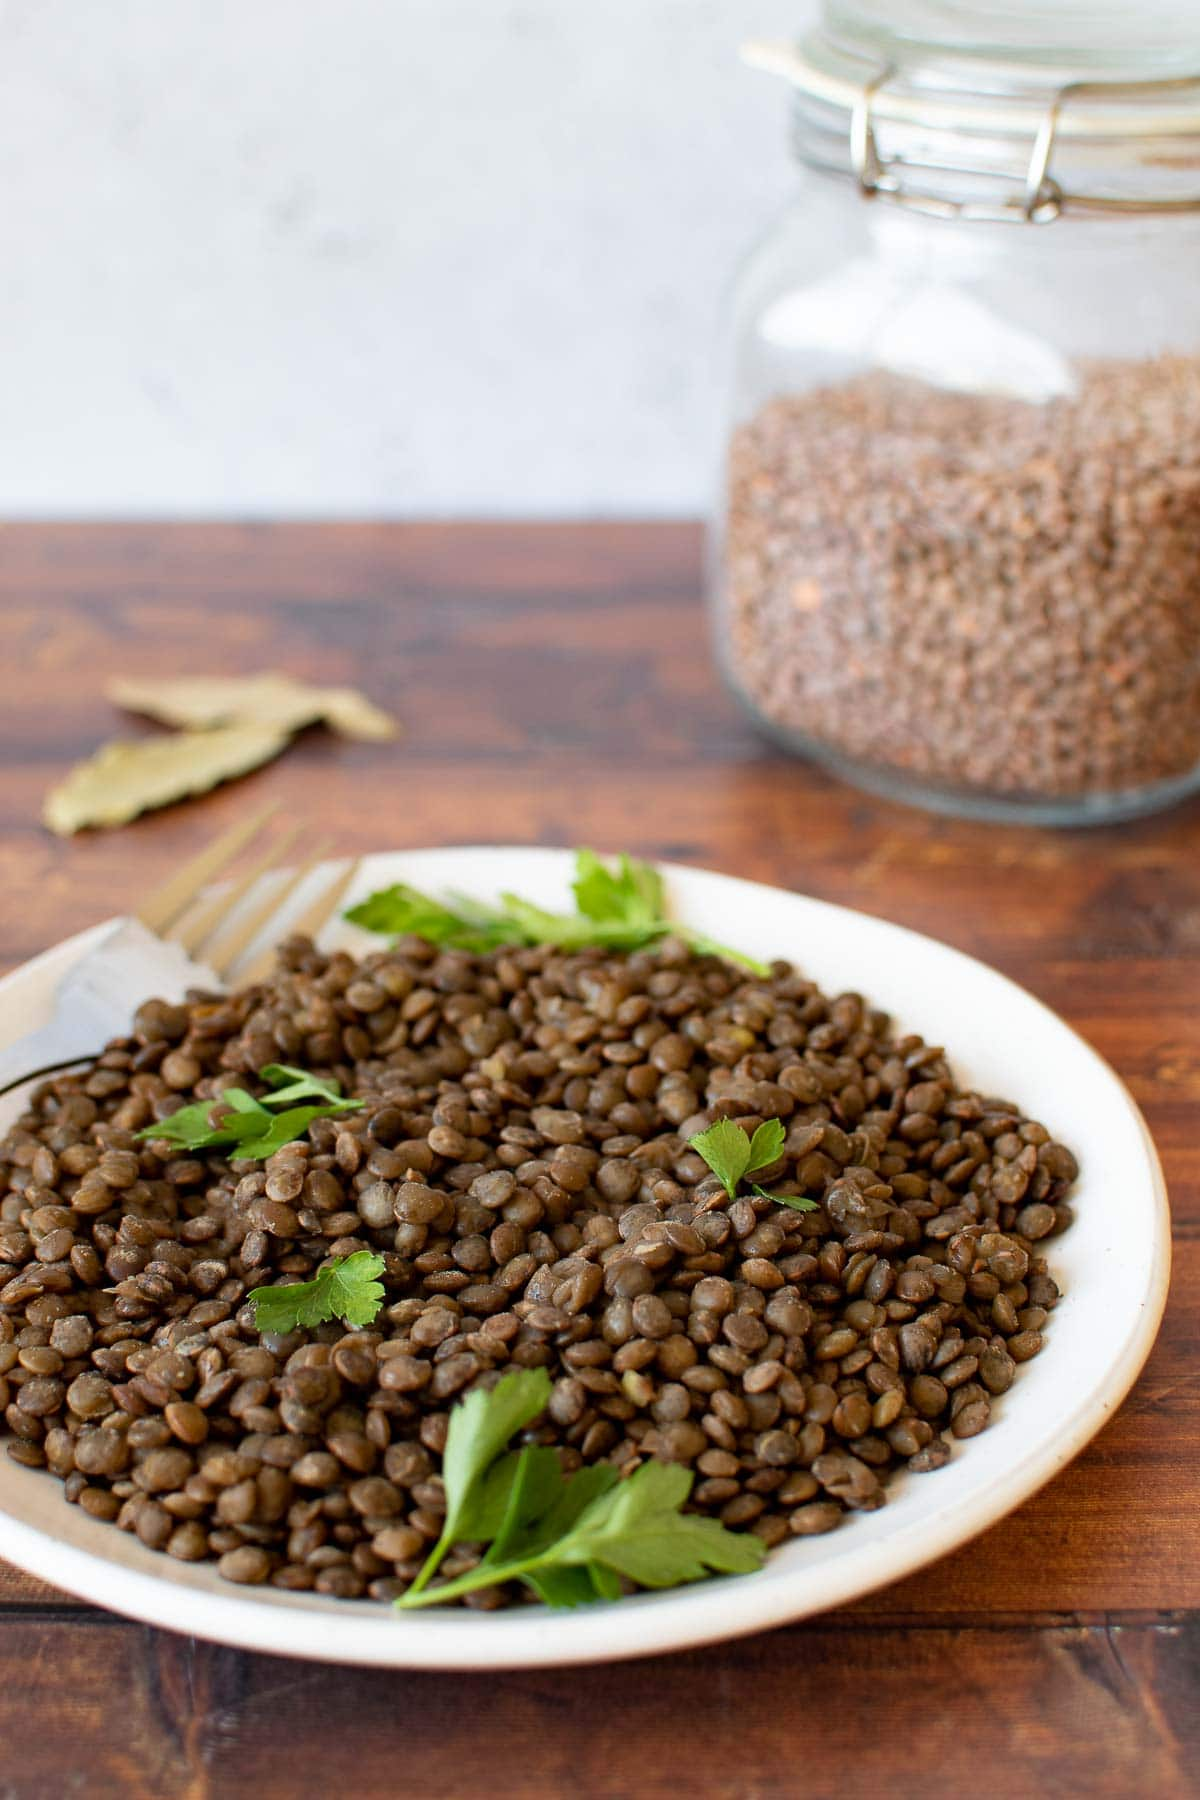 Cooked lentils on a plate.